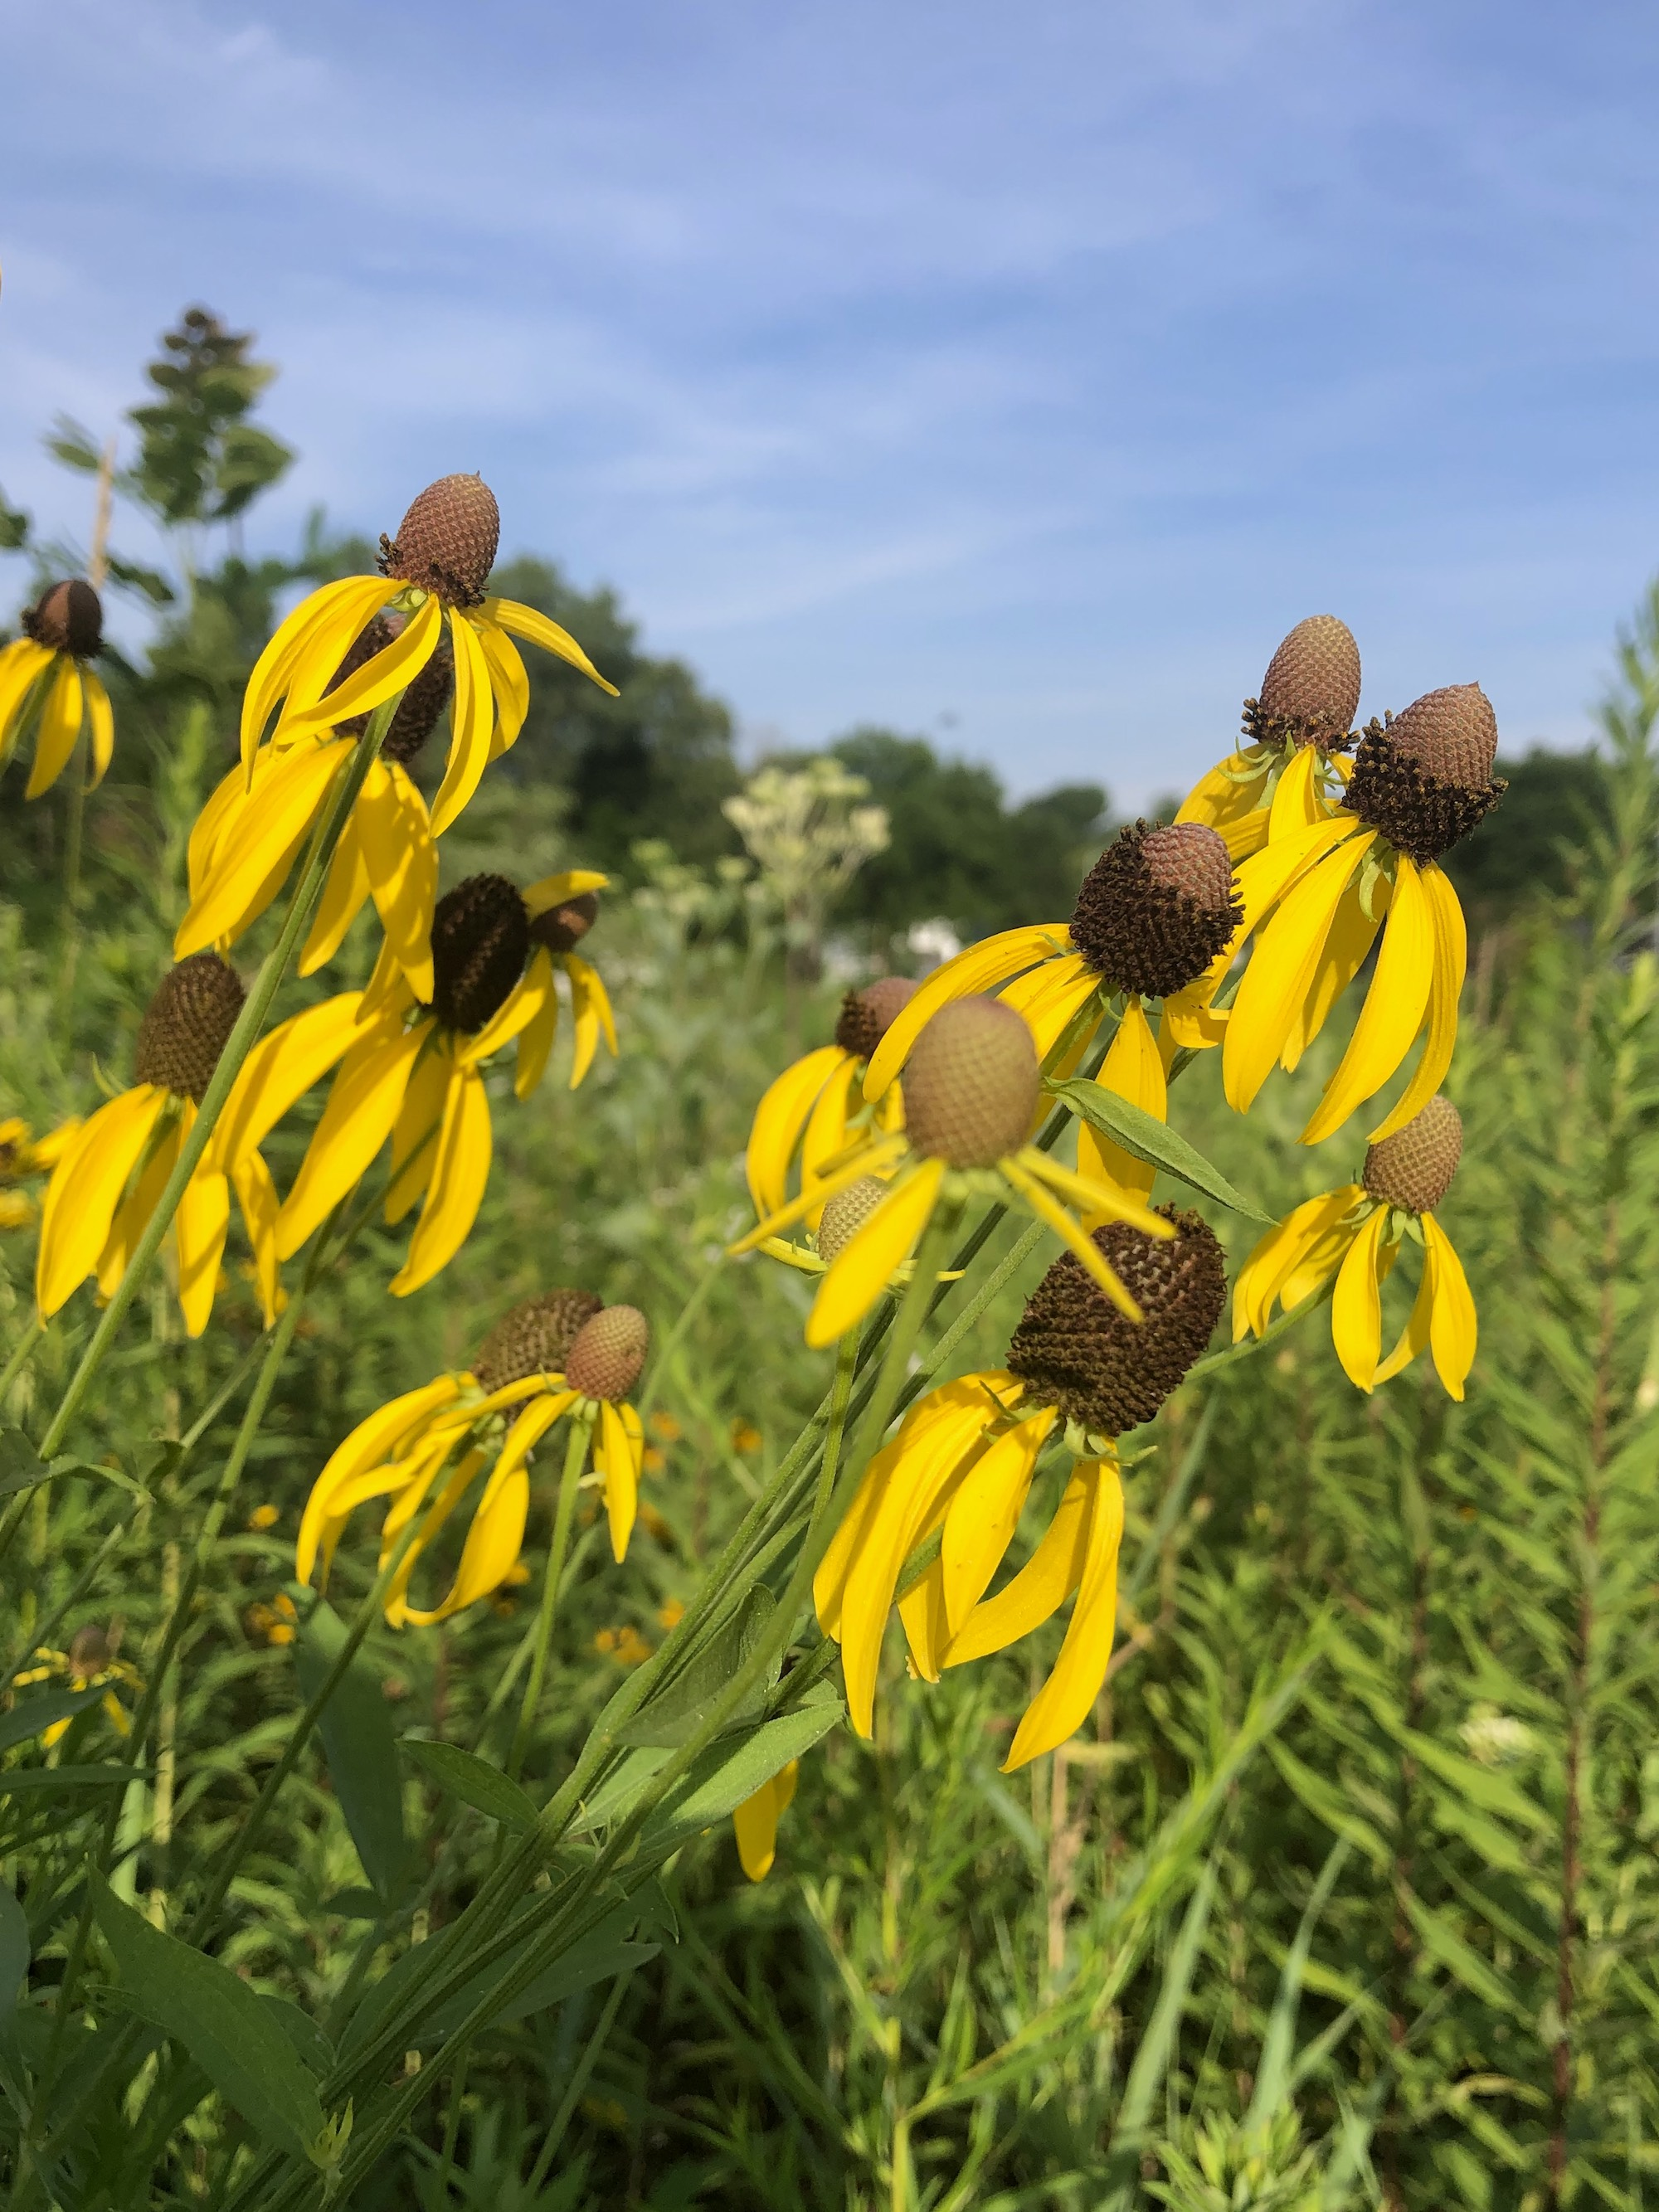 ray-headed coneflower on shore of Marion Dunn Pond in Madison, Wisconsin on July 26, 2020.